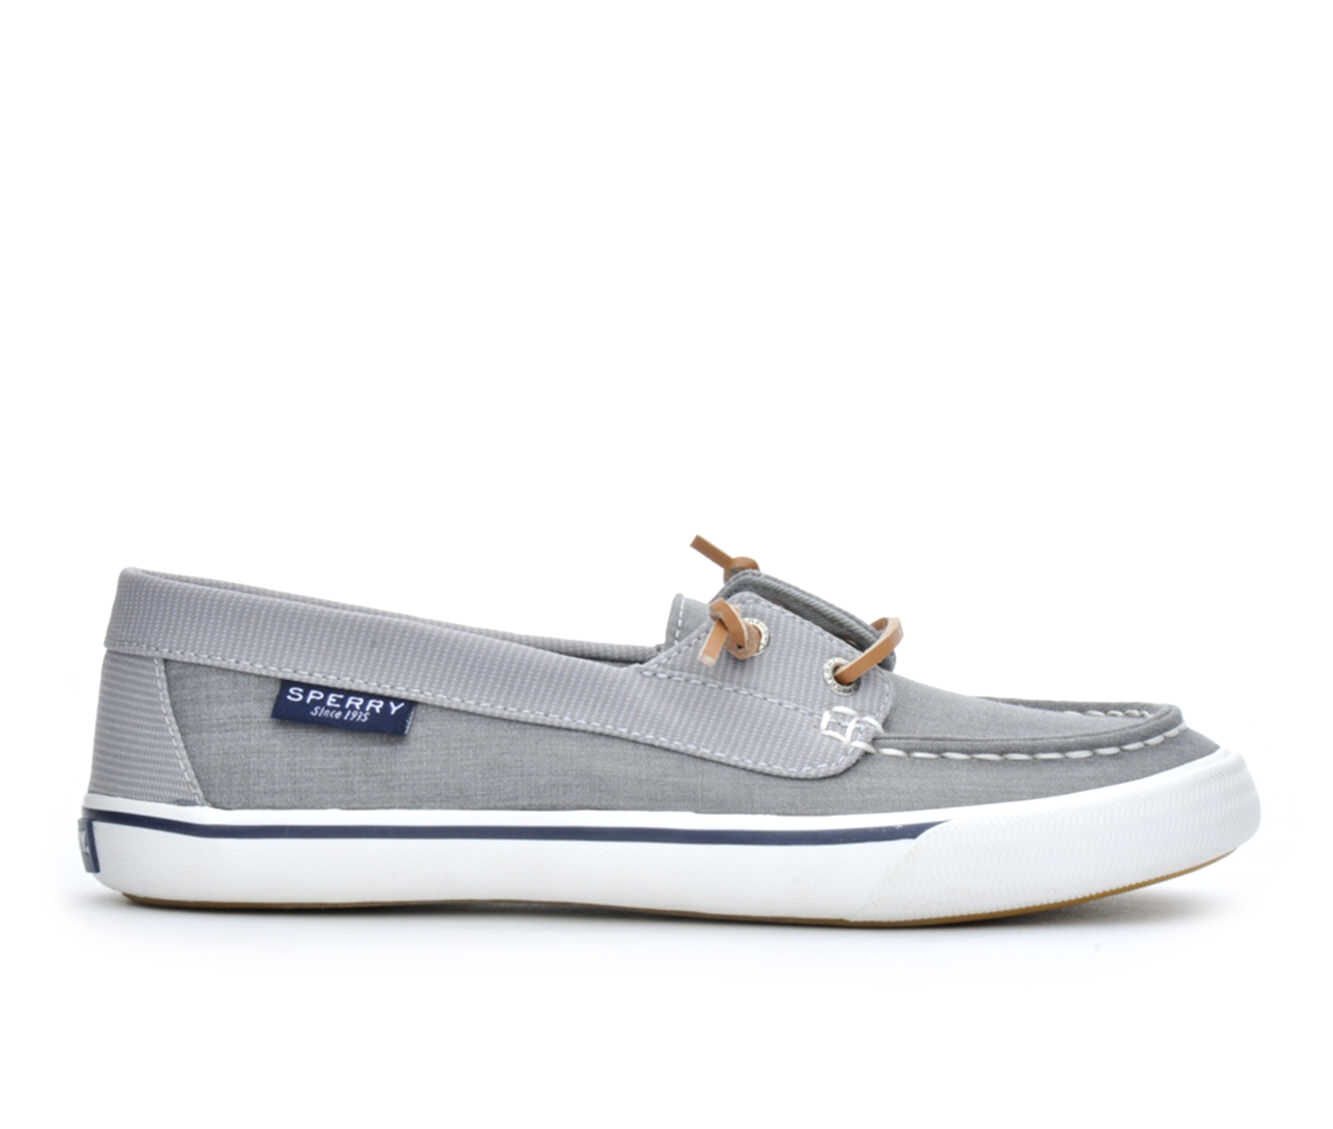 Women's Sperry Lounge Away Boat Shoes clearance online fake release dates authentic fashionable for sale big sale online jBJACQt5